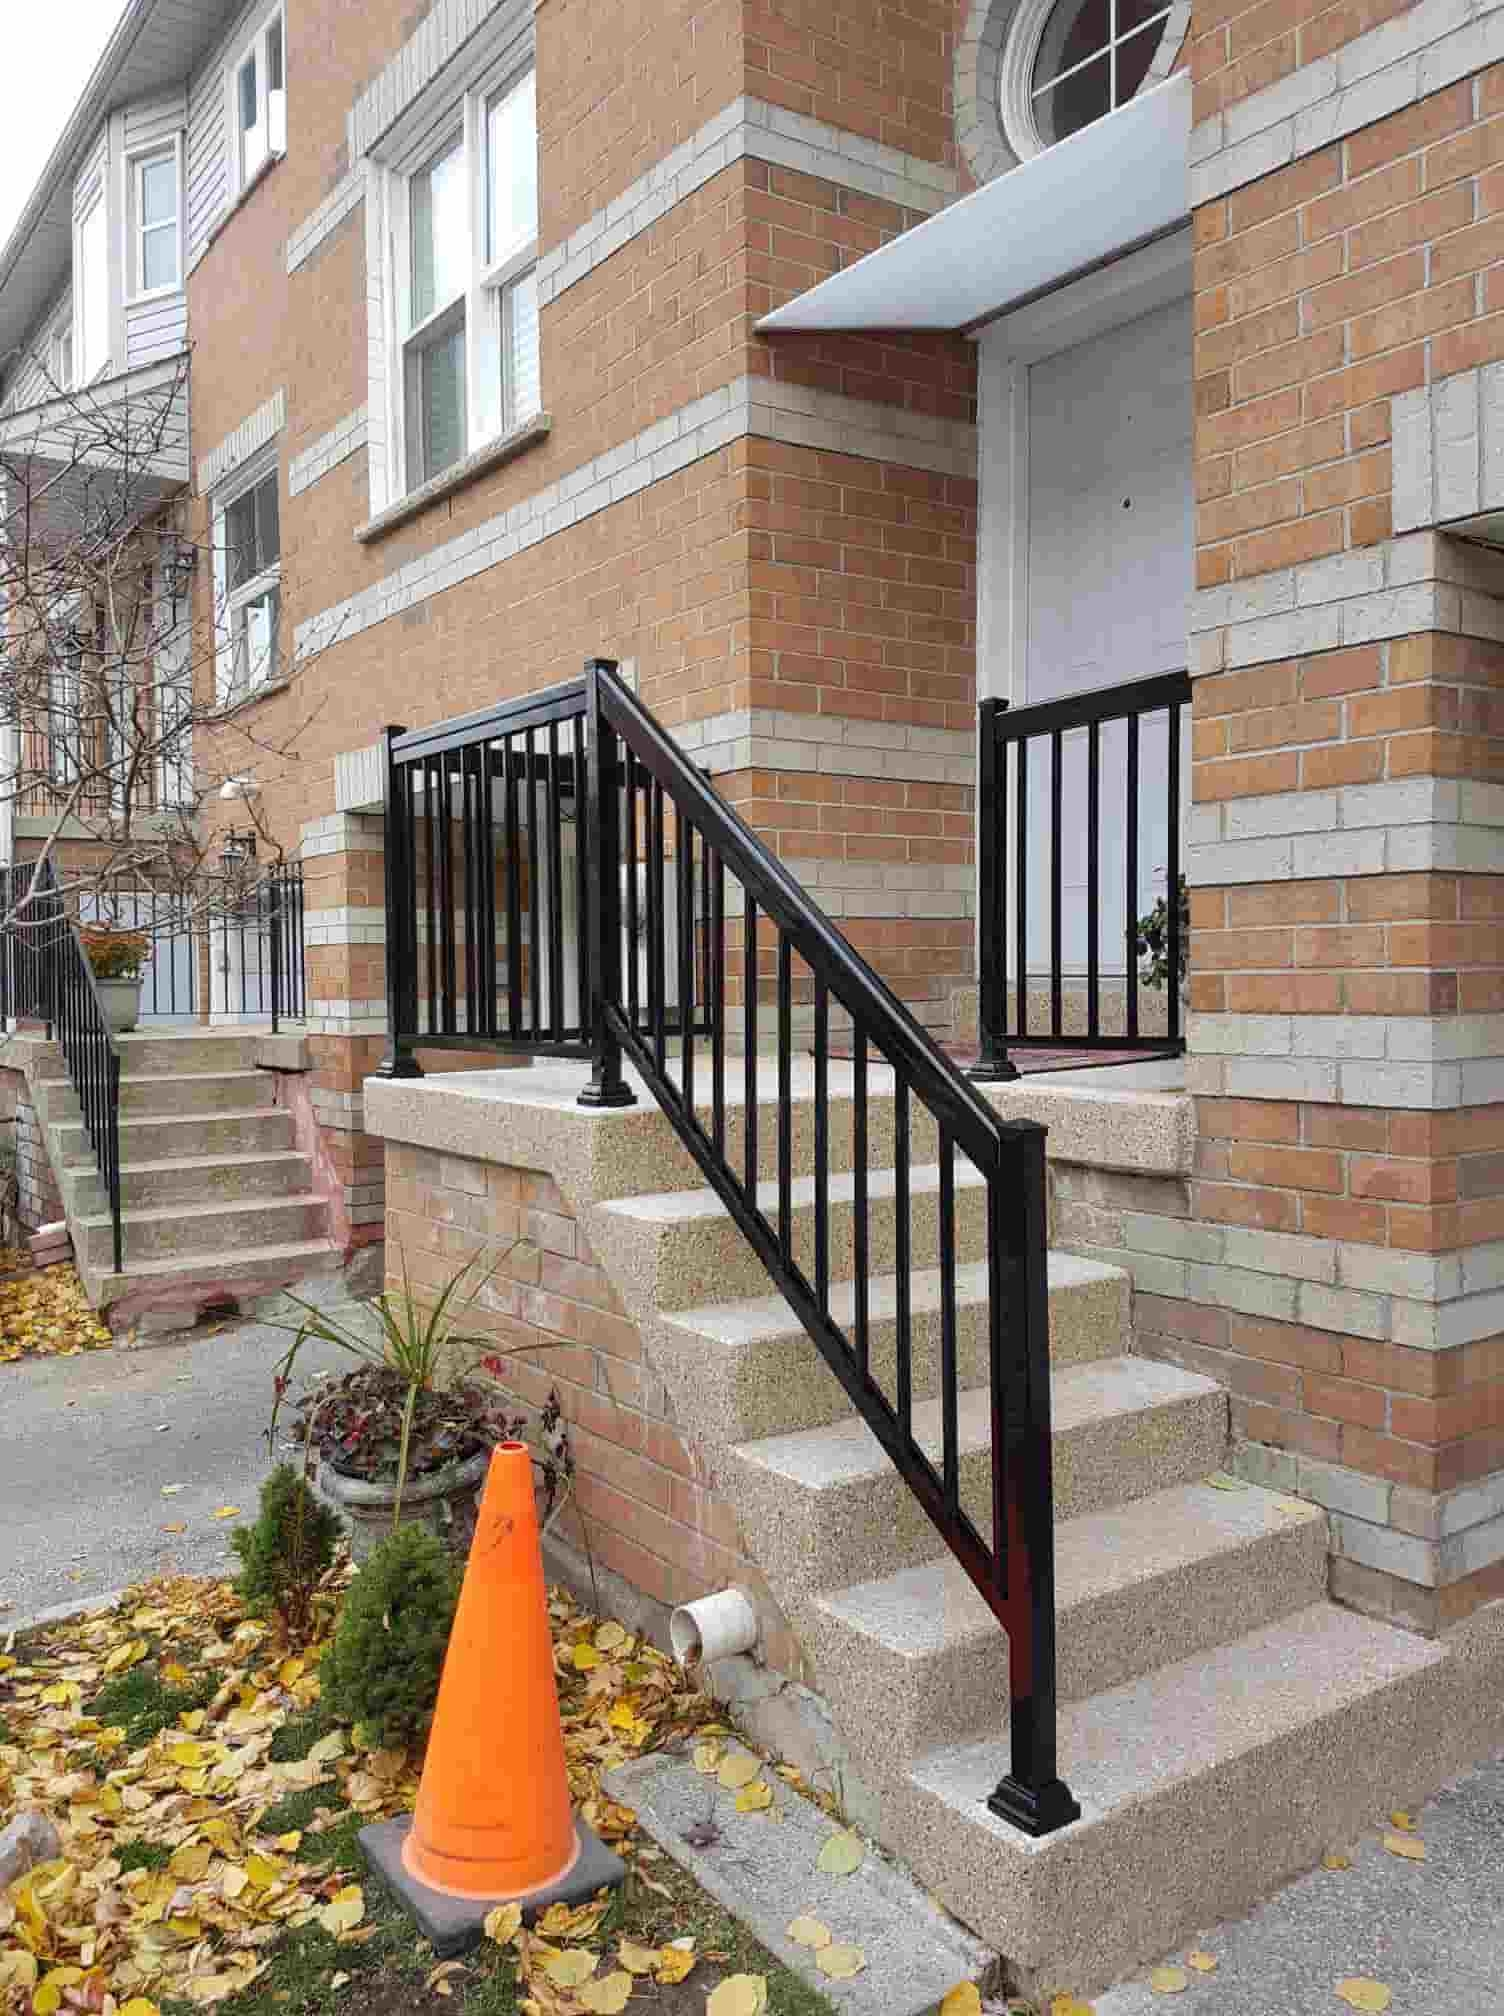 Commercial Aluminum Railing Systems Handrails Its Height | Portable Stairs With Railing